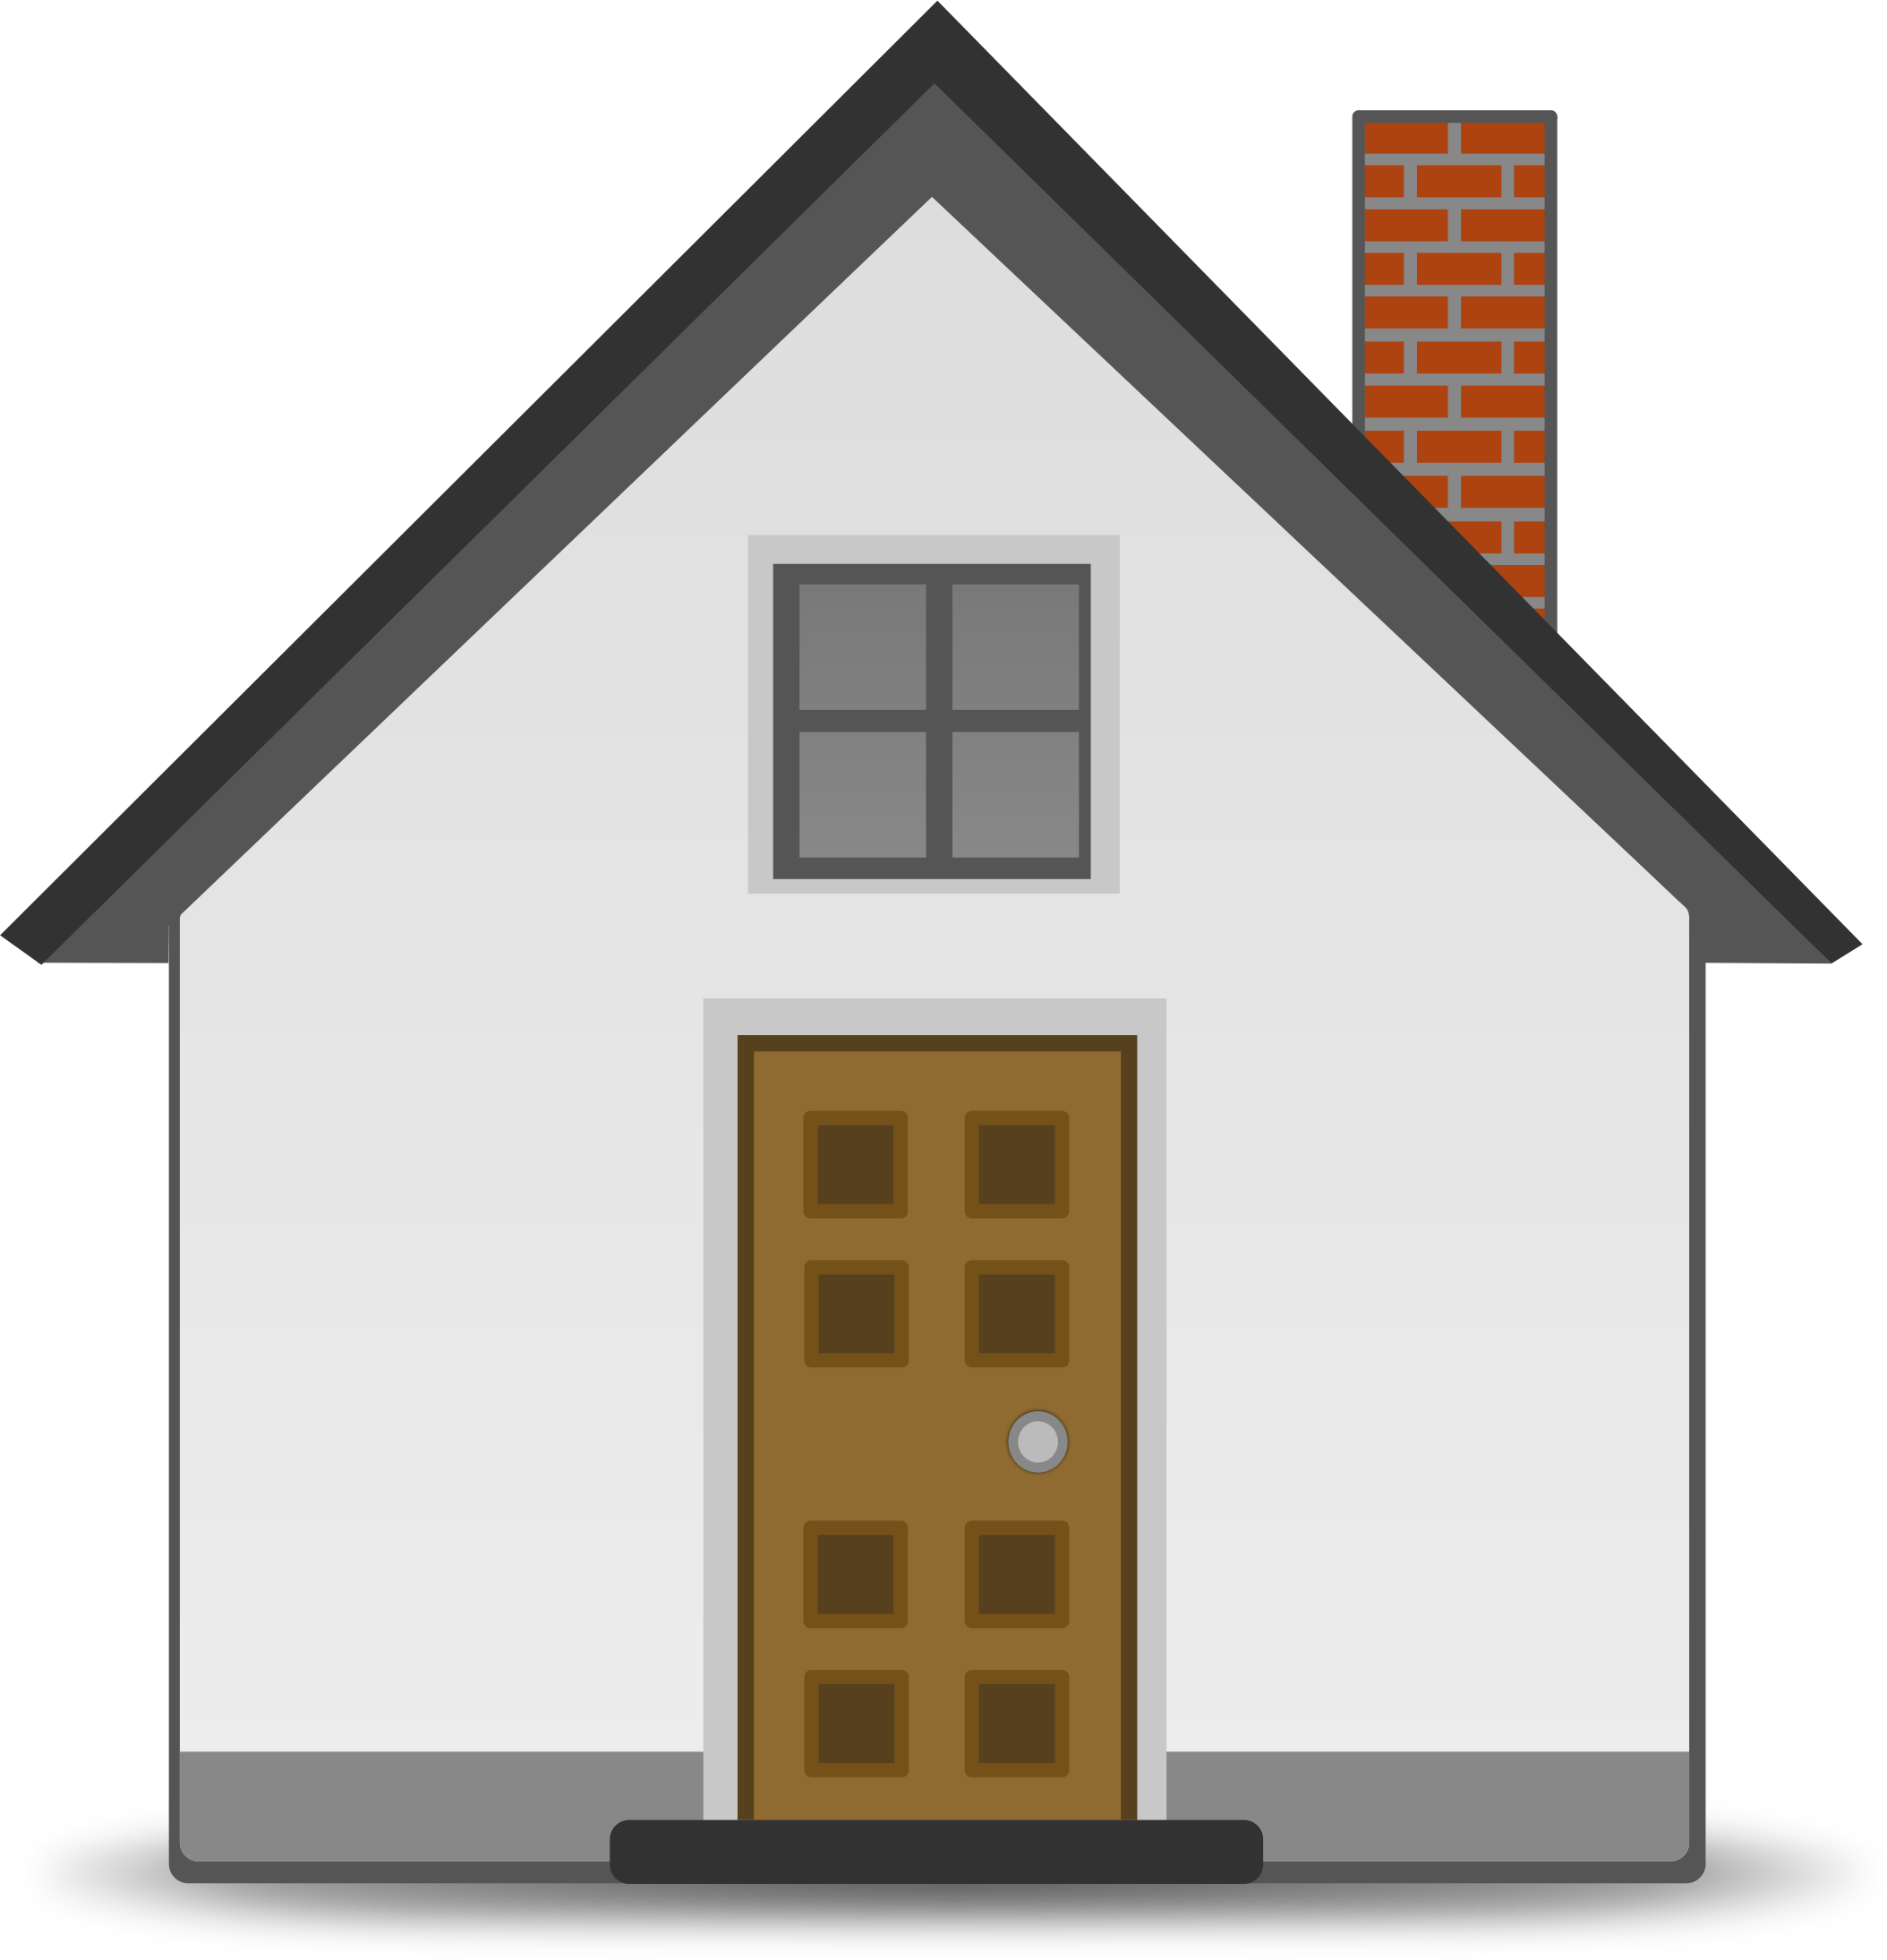 Clipart images of house picture stock House clipart png clipart download #45374 - Free Icons and PNG ... picture stock